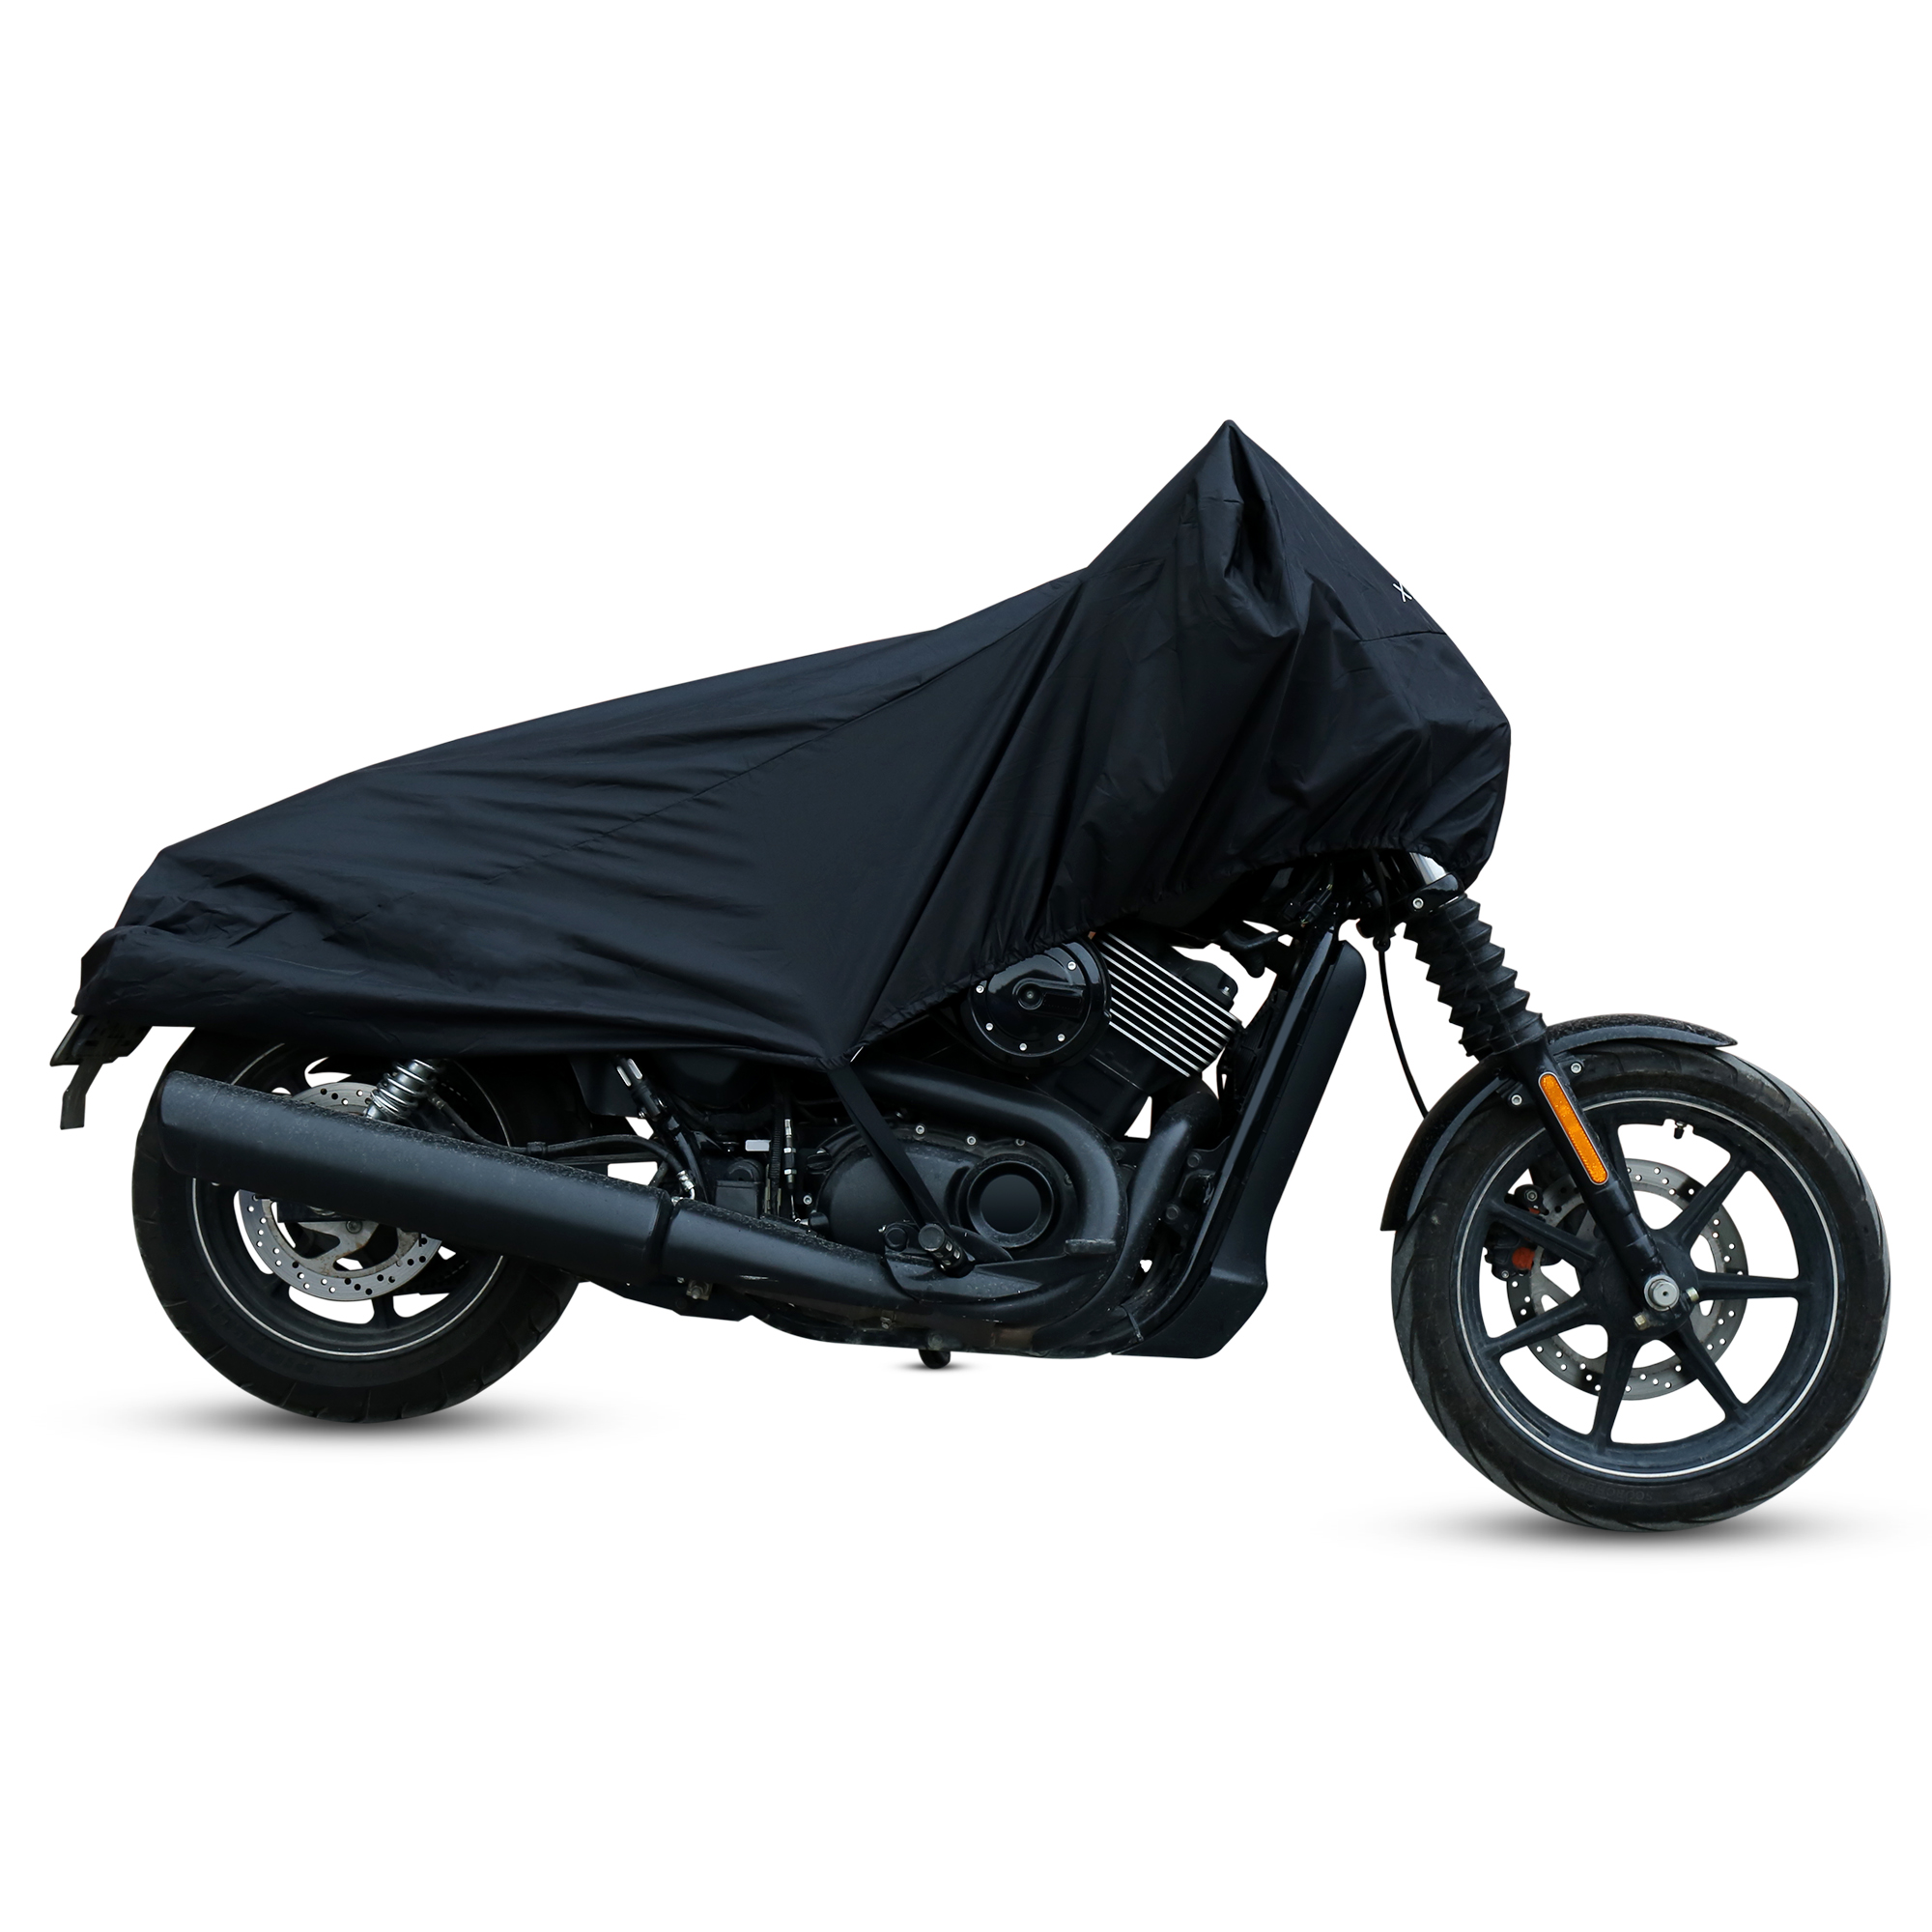 Black//Silver AKORD Motorcycle Waterproof UV Protective Cover with Storage Bag Size XL